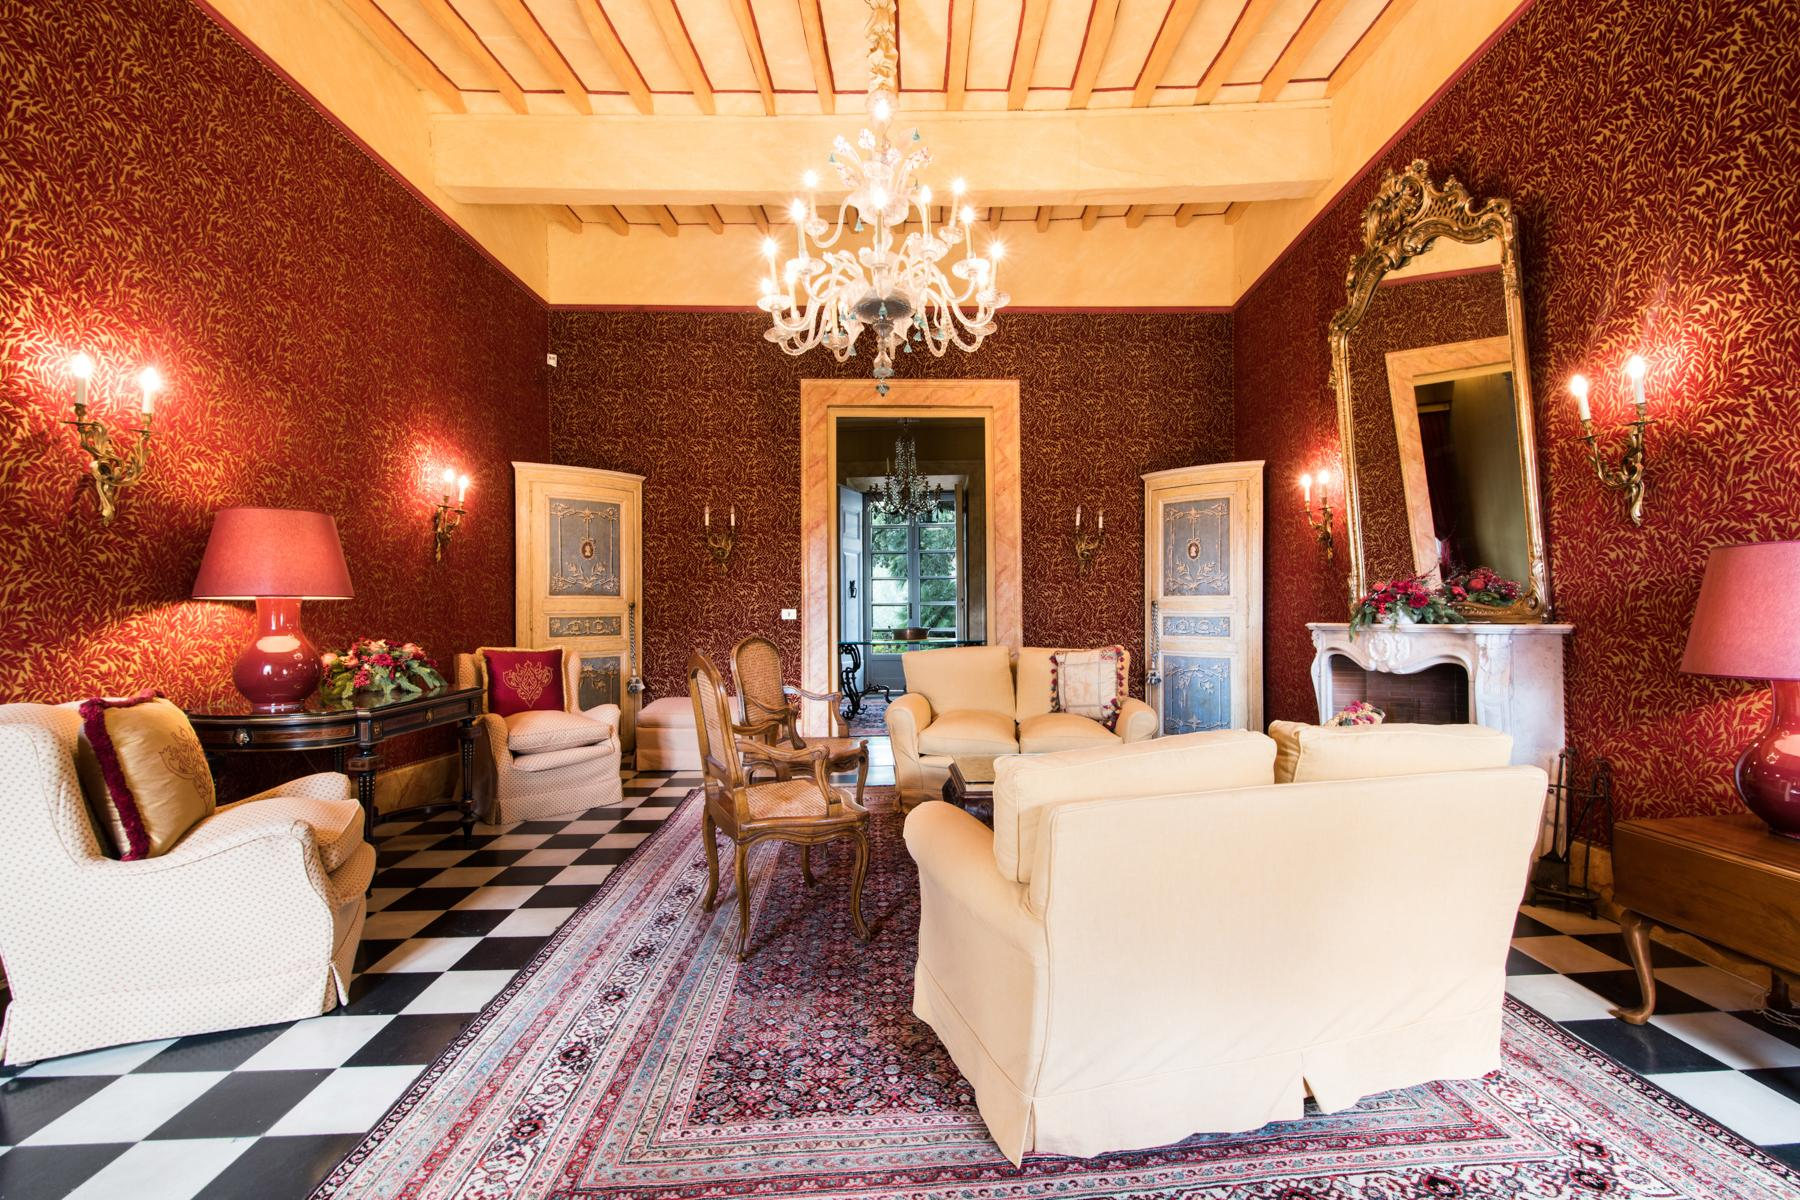 Marvelous villa in the countryside of Lucca - 10